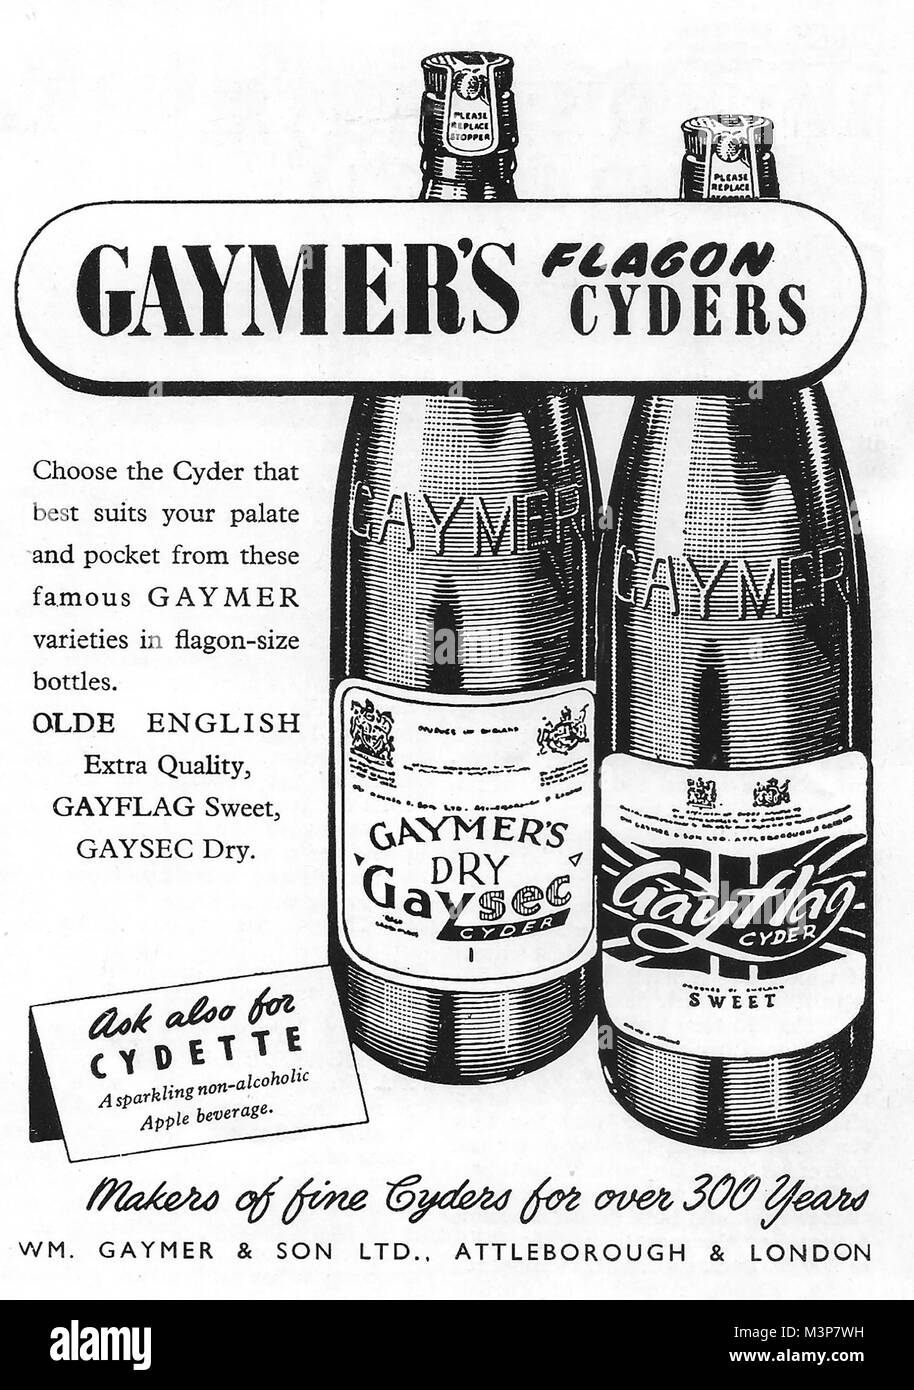 Gaymer cyder flagons advert, advertising in Country Life magazine UK 1951 - Stock Image